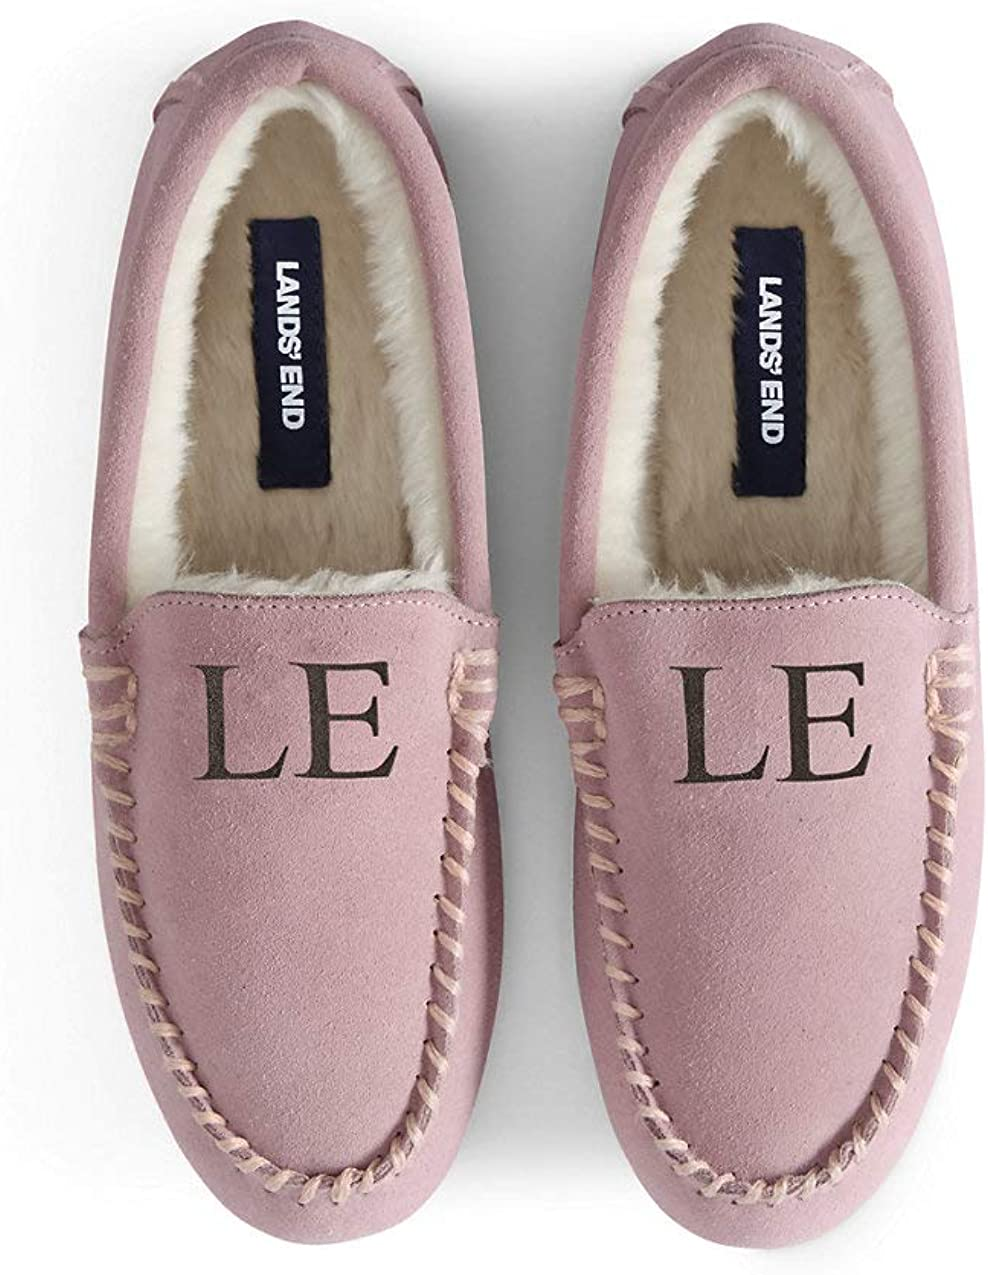 Lands' End Women's Suede Leather Moccasin Slippers